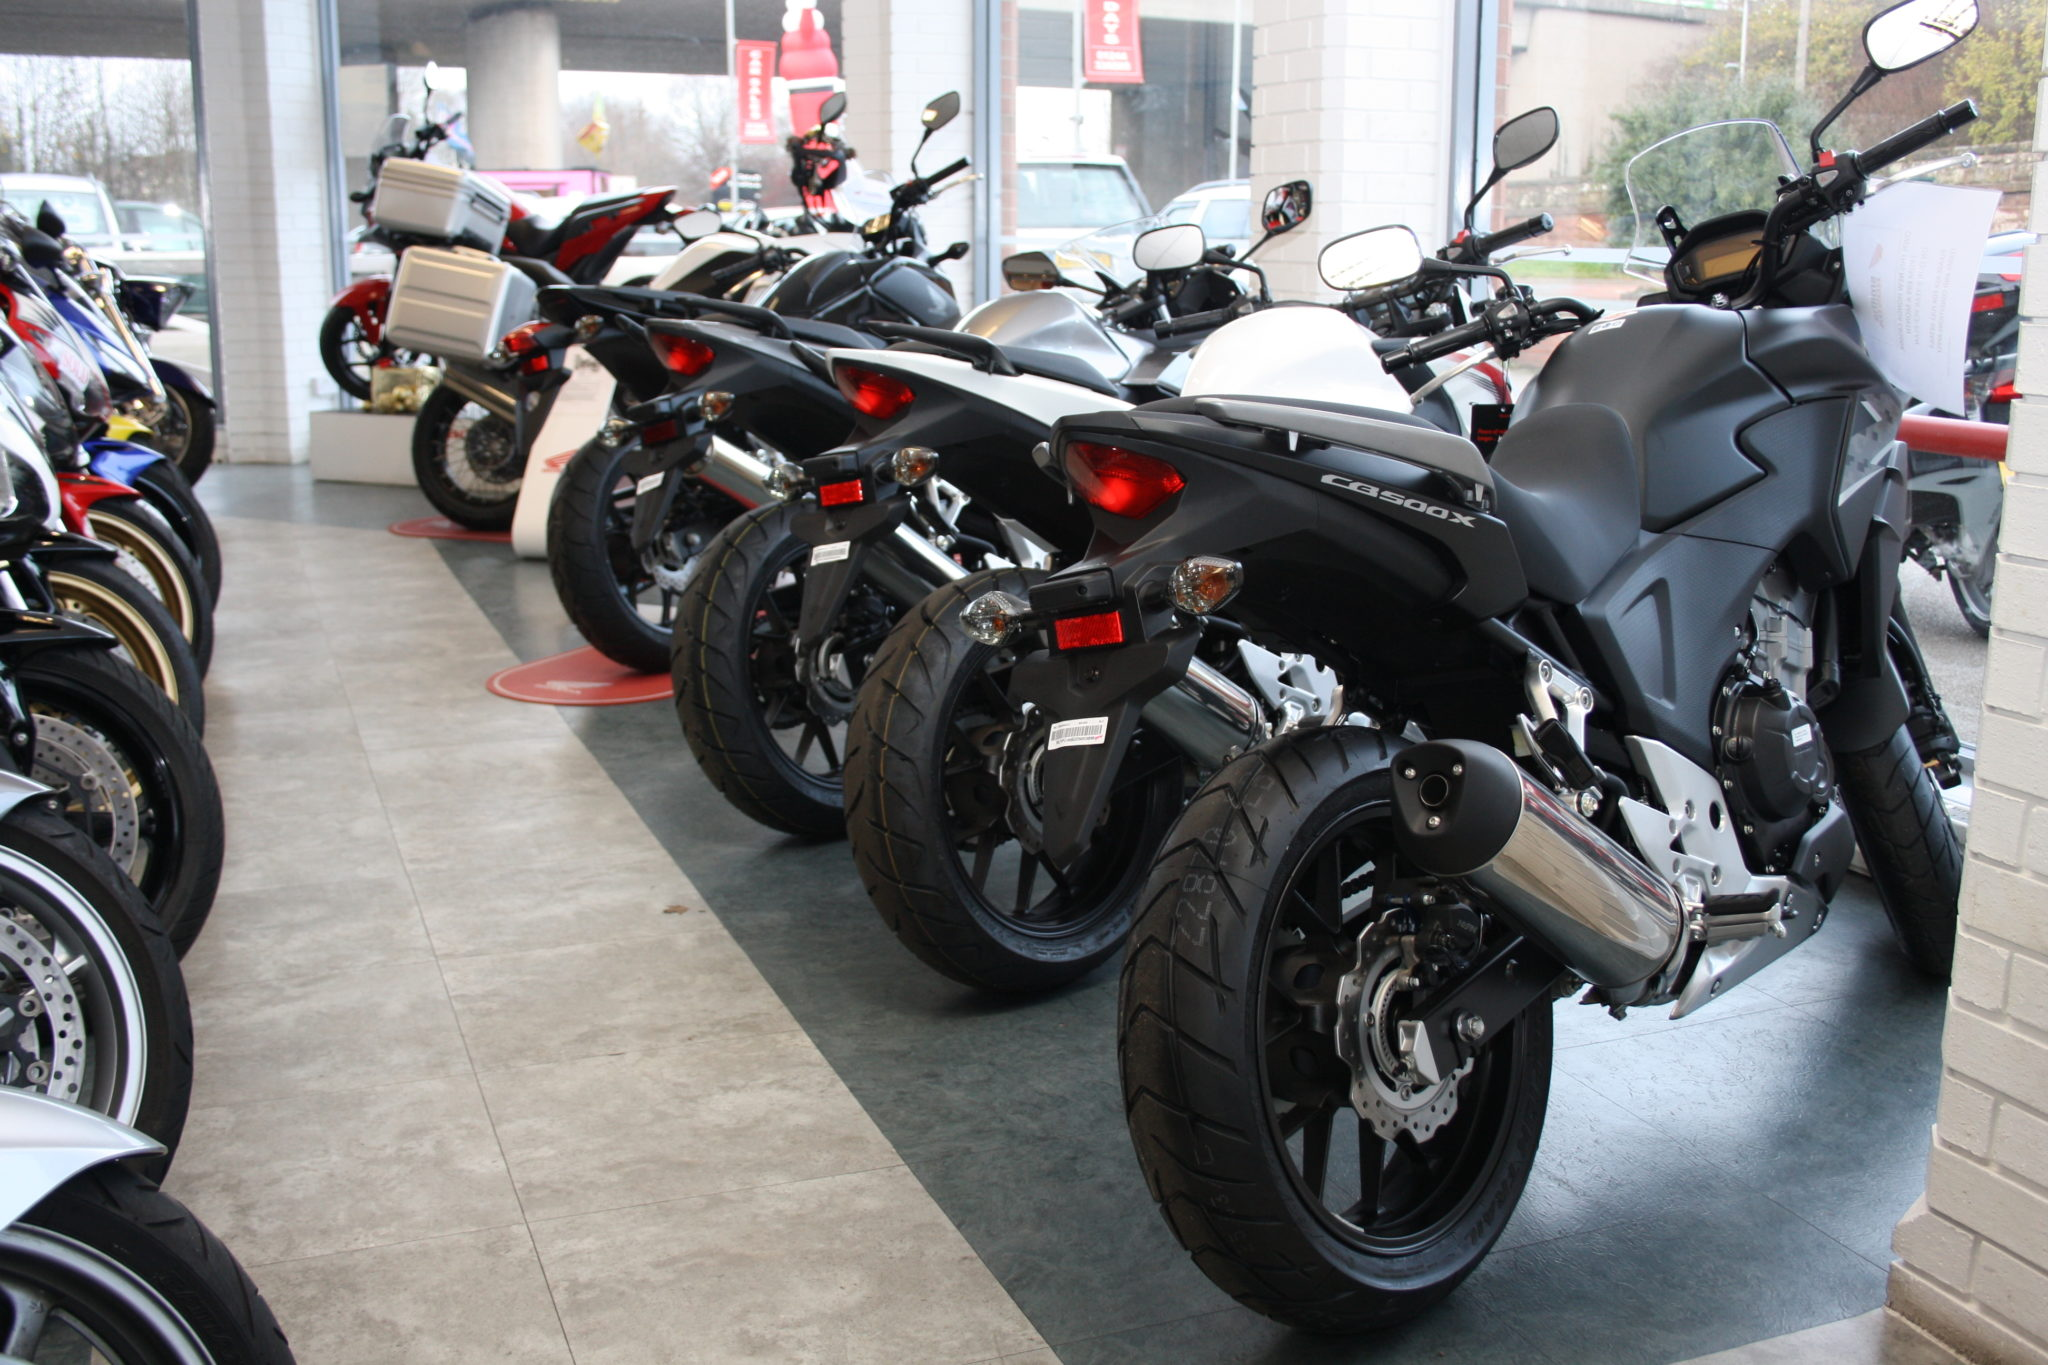 Motorcycle dealers Dec 2013